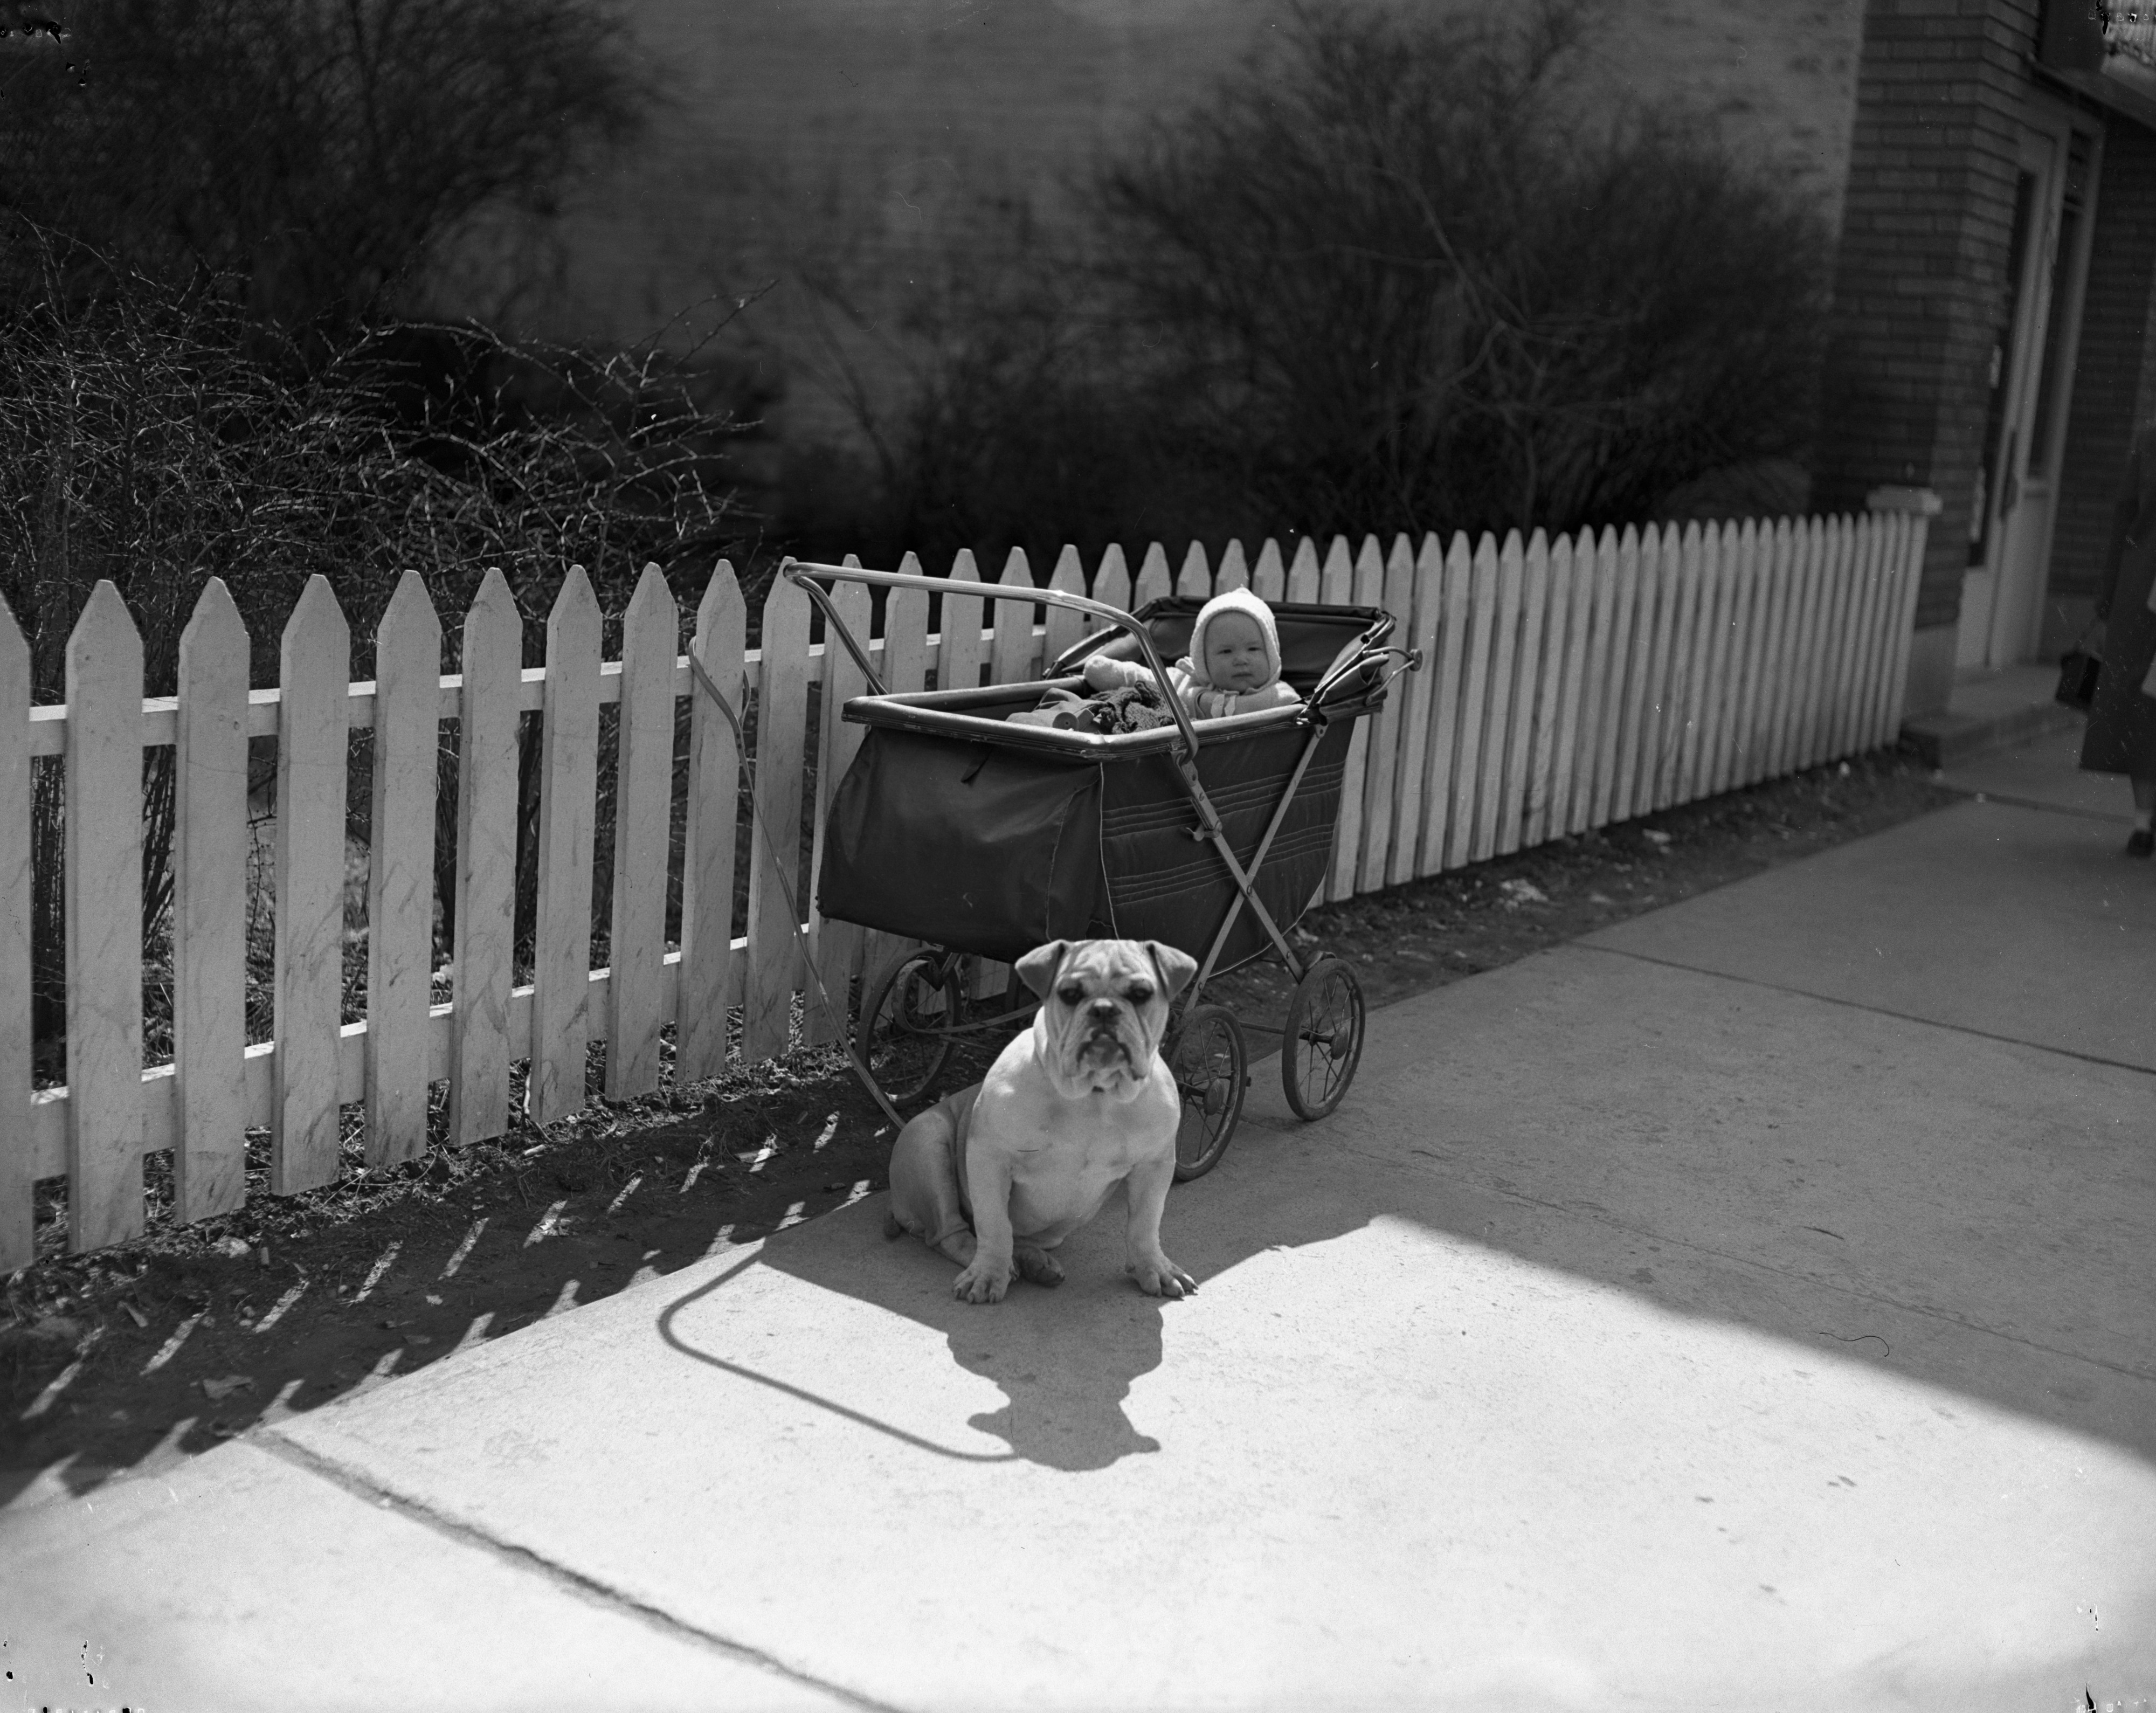 """Tubby"" stands guard over Steven Miller's baby carriage, April 1950 image"